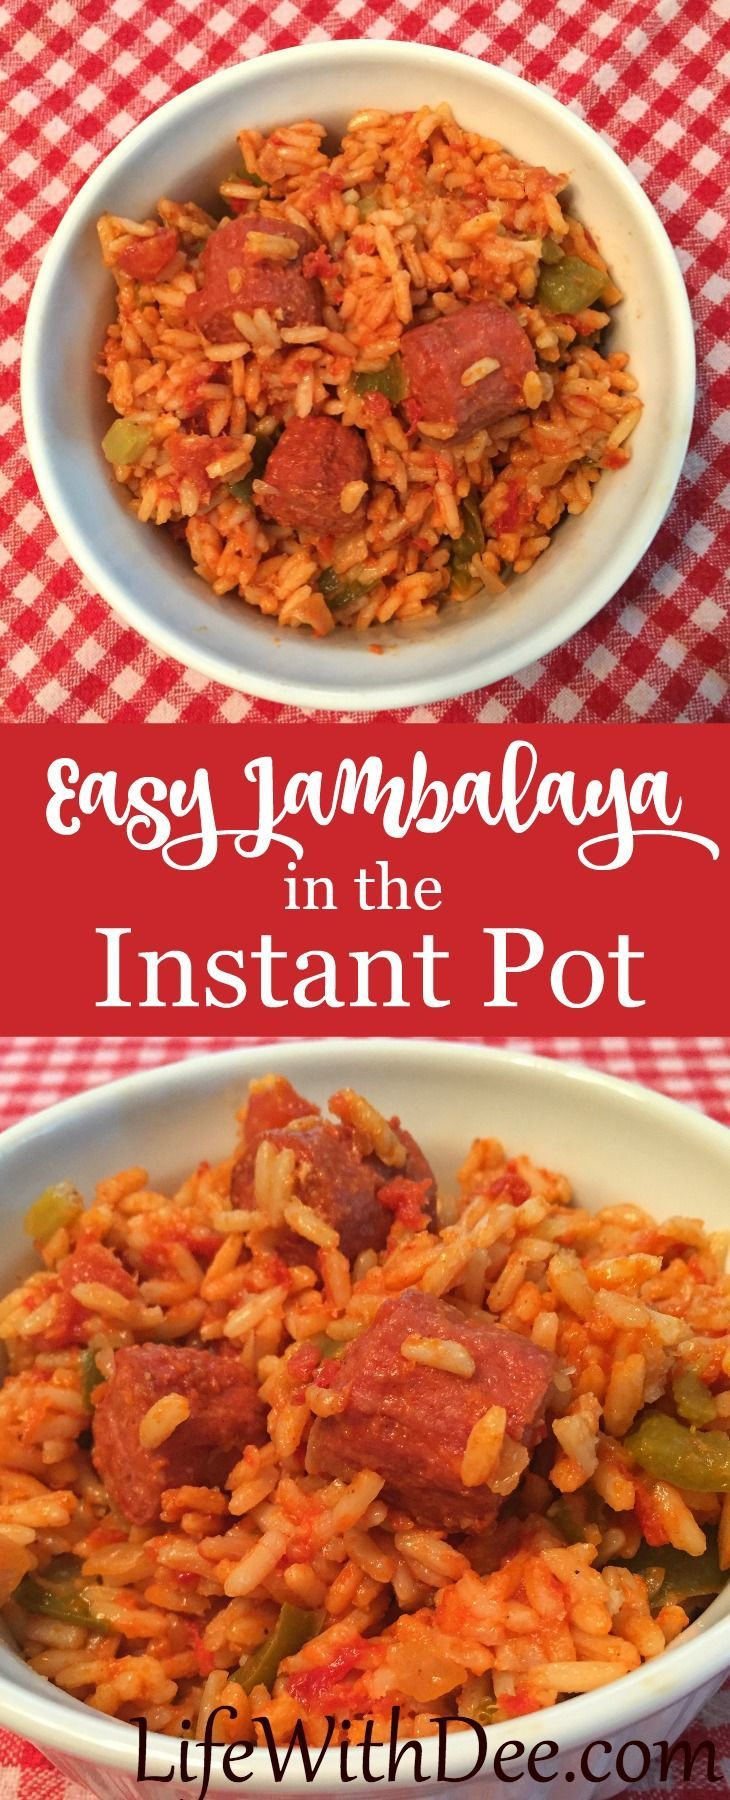 Easy Jambalaya made in the instant Pot. Great weeknight dinner!